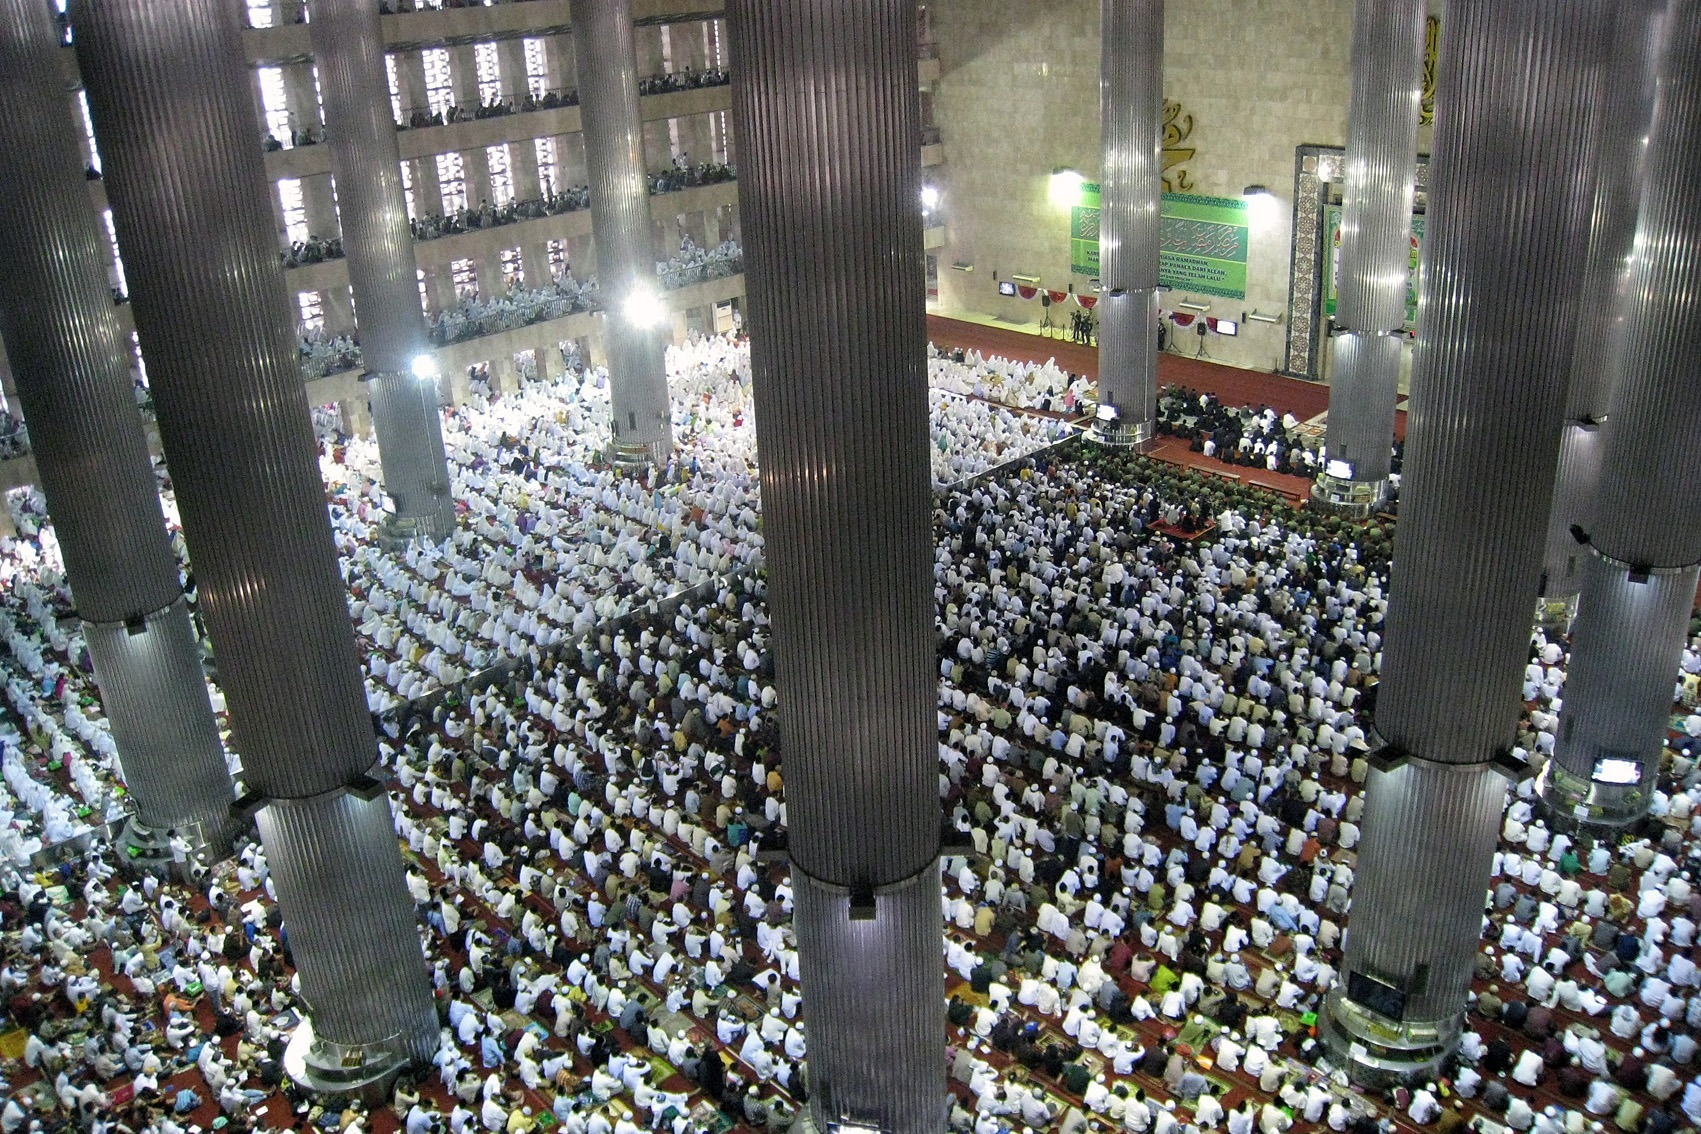 Photograph: Thousands of the Indonesian muslims congregrated during Eid ul Fitr mass prayer in Istiqlal Mosque, the largest mosque in Southeast Asia, located in Central Jakarta, Indonesia.